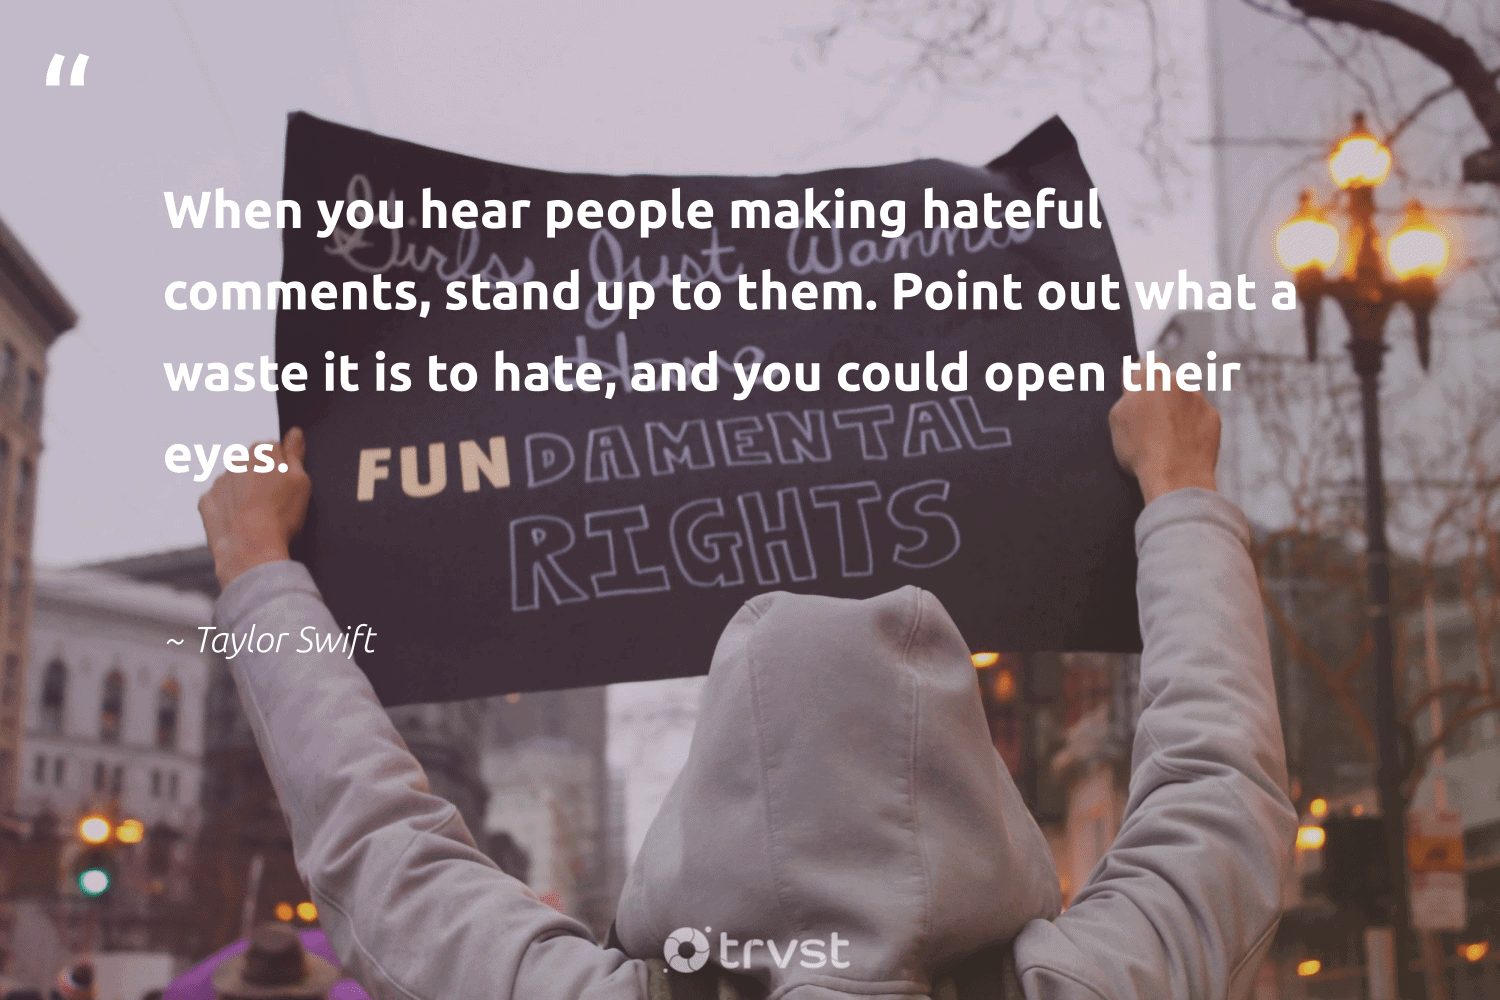 """""""When you hear people making hateful comments, stand up to them. Point out what a waste it is to hate, and you could open their eyes.""""  - Taylor Swift #trvst #quotes #waste #makeadifference #dotherightthing #socialchange #planetearthfirst #giveback #bethechange #socialgood #collectiveaction #weareallone"""